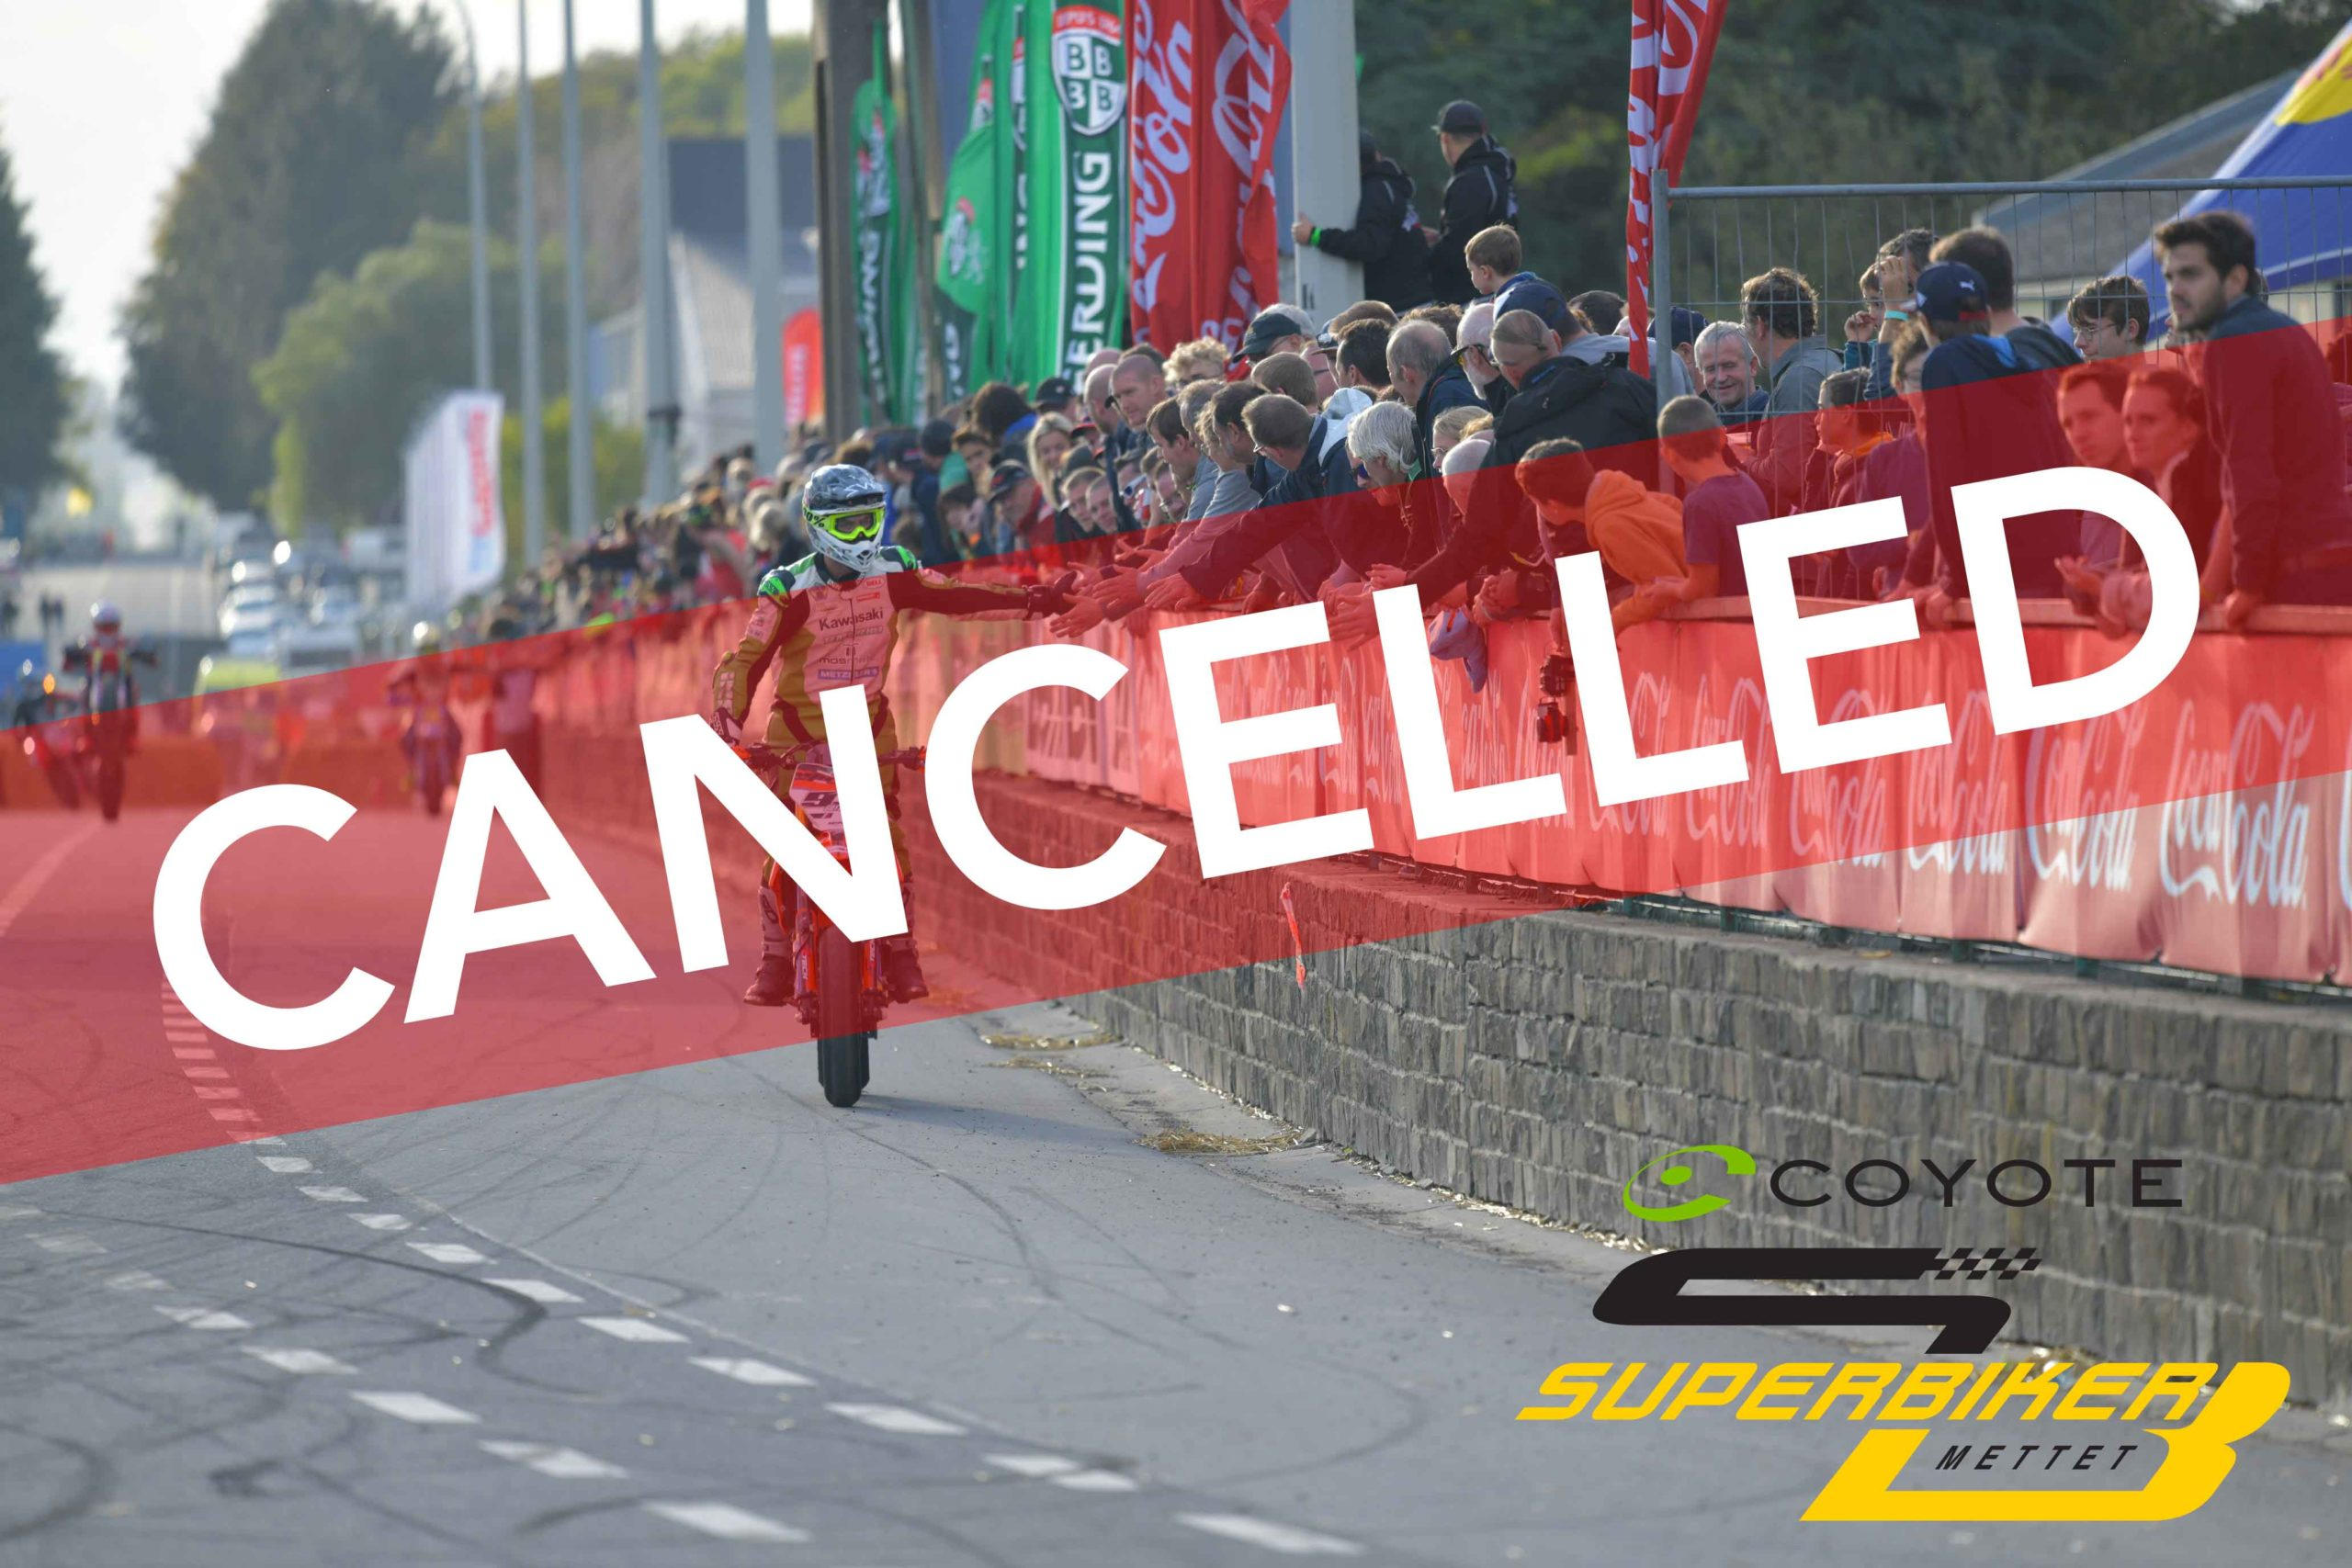 Coyote Superbiker 2020 cancelled